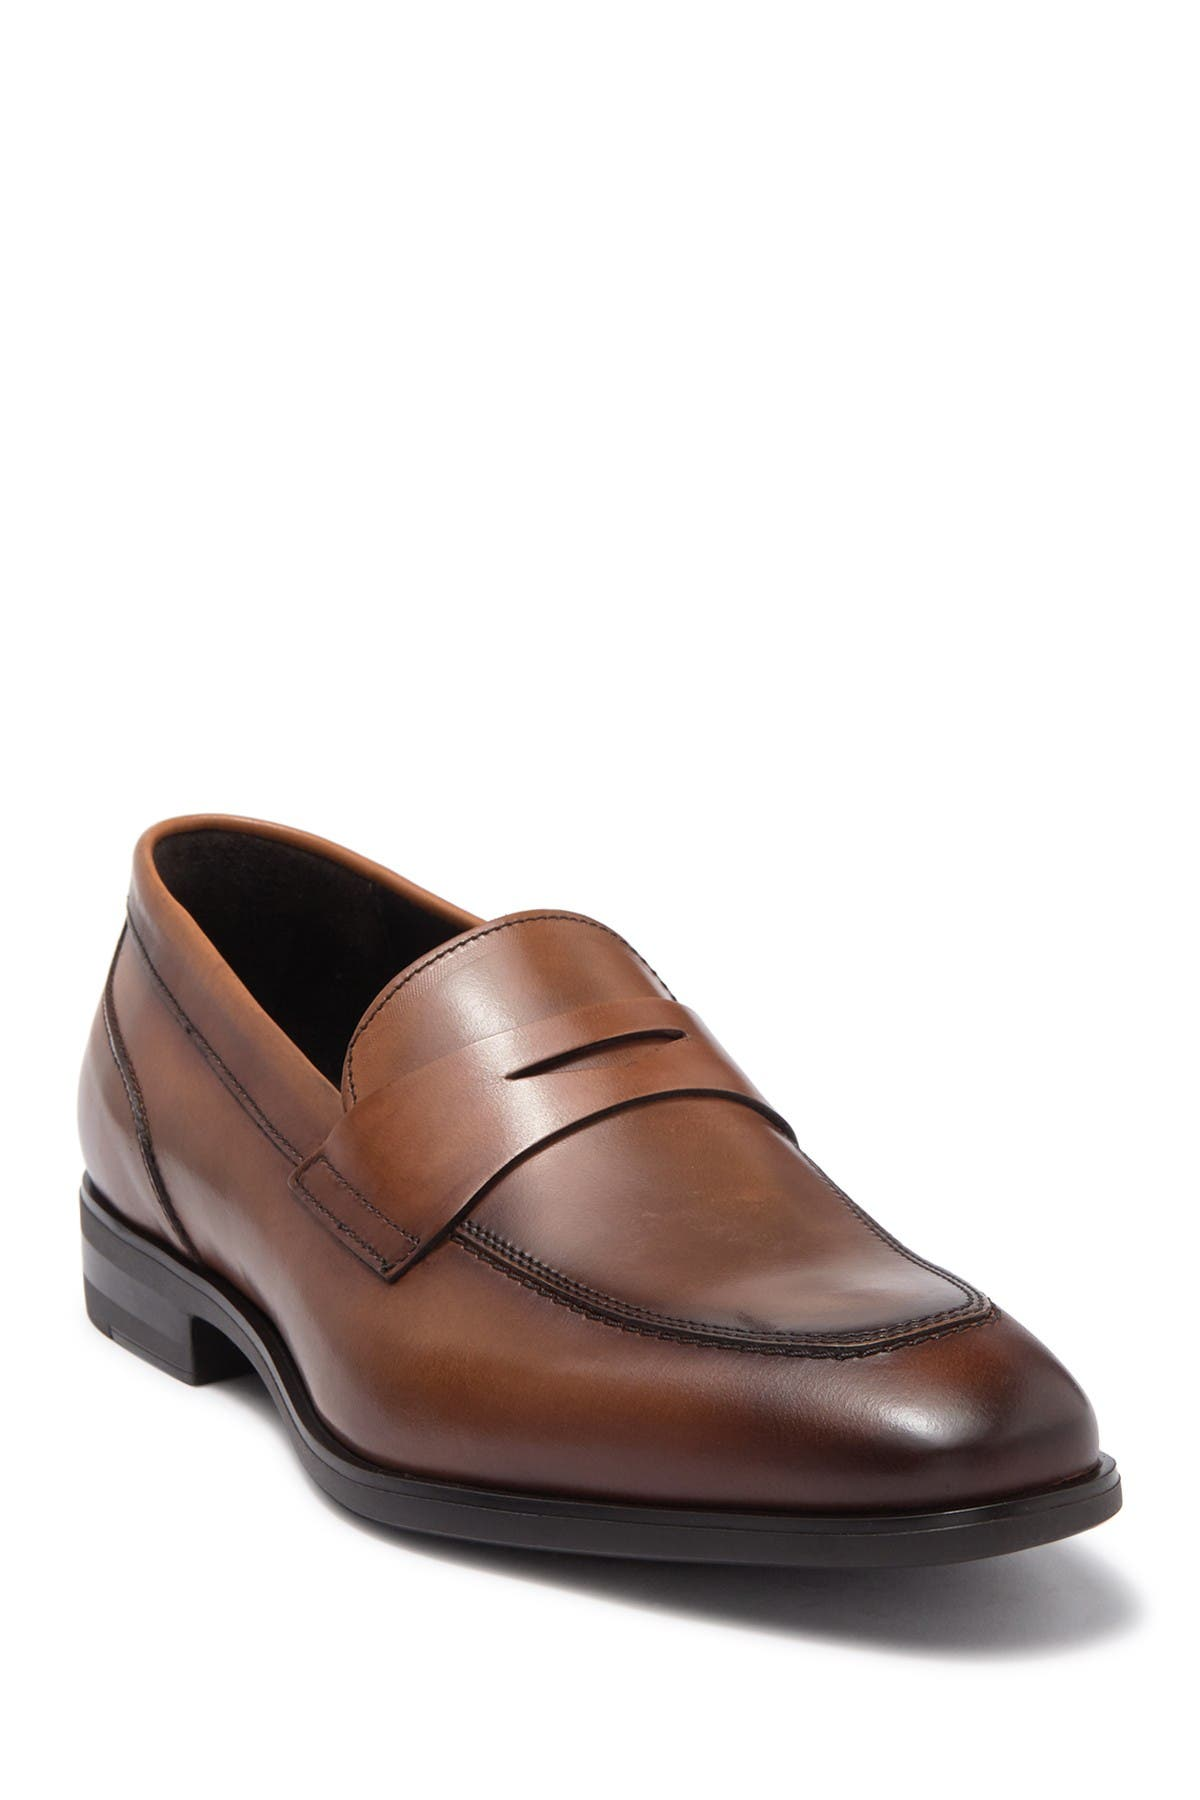 Image of Bruno Magli Boris Leather Penny Loafer